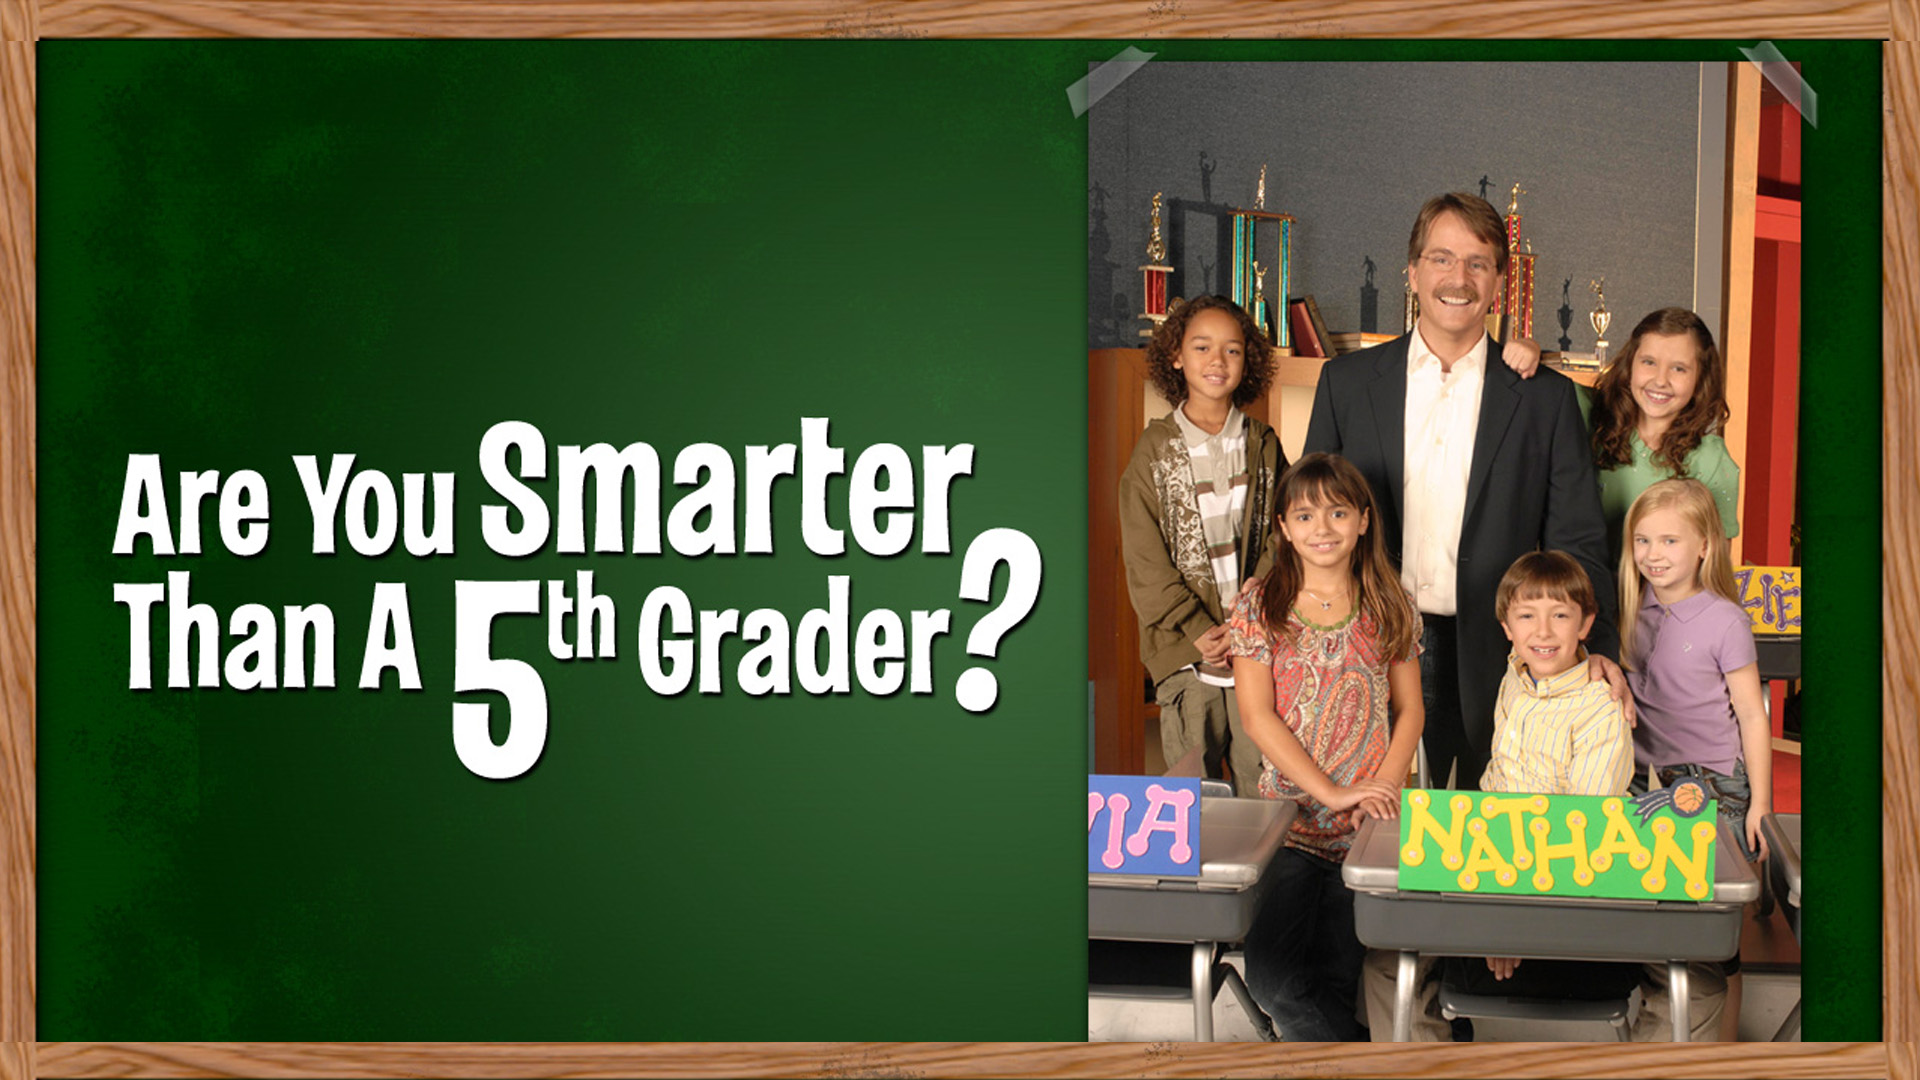 are you smarter than a 5th grader k--k.space 2018, Modern powerpoint